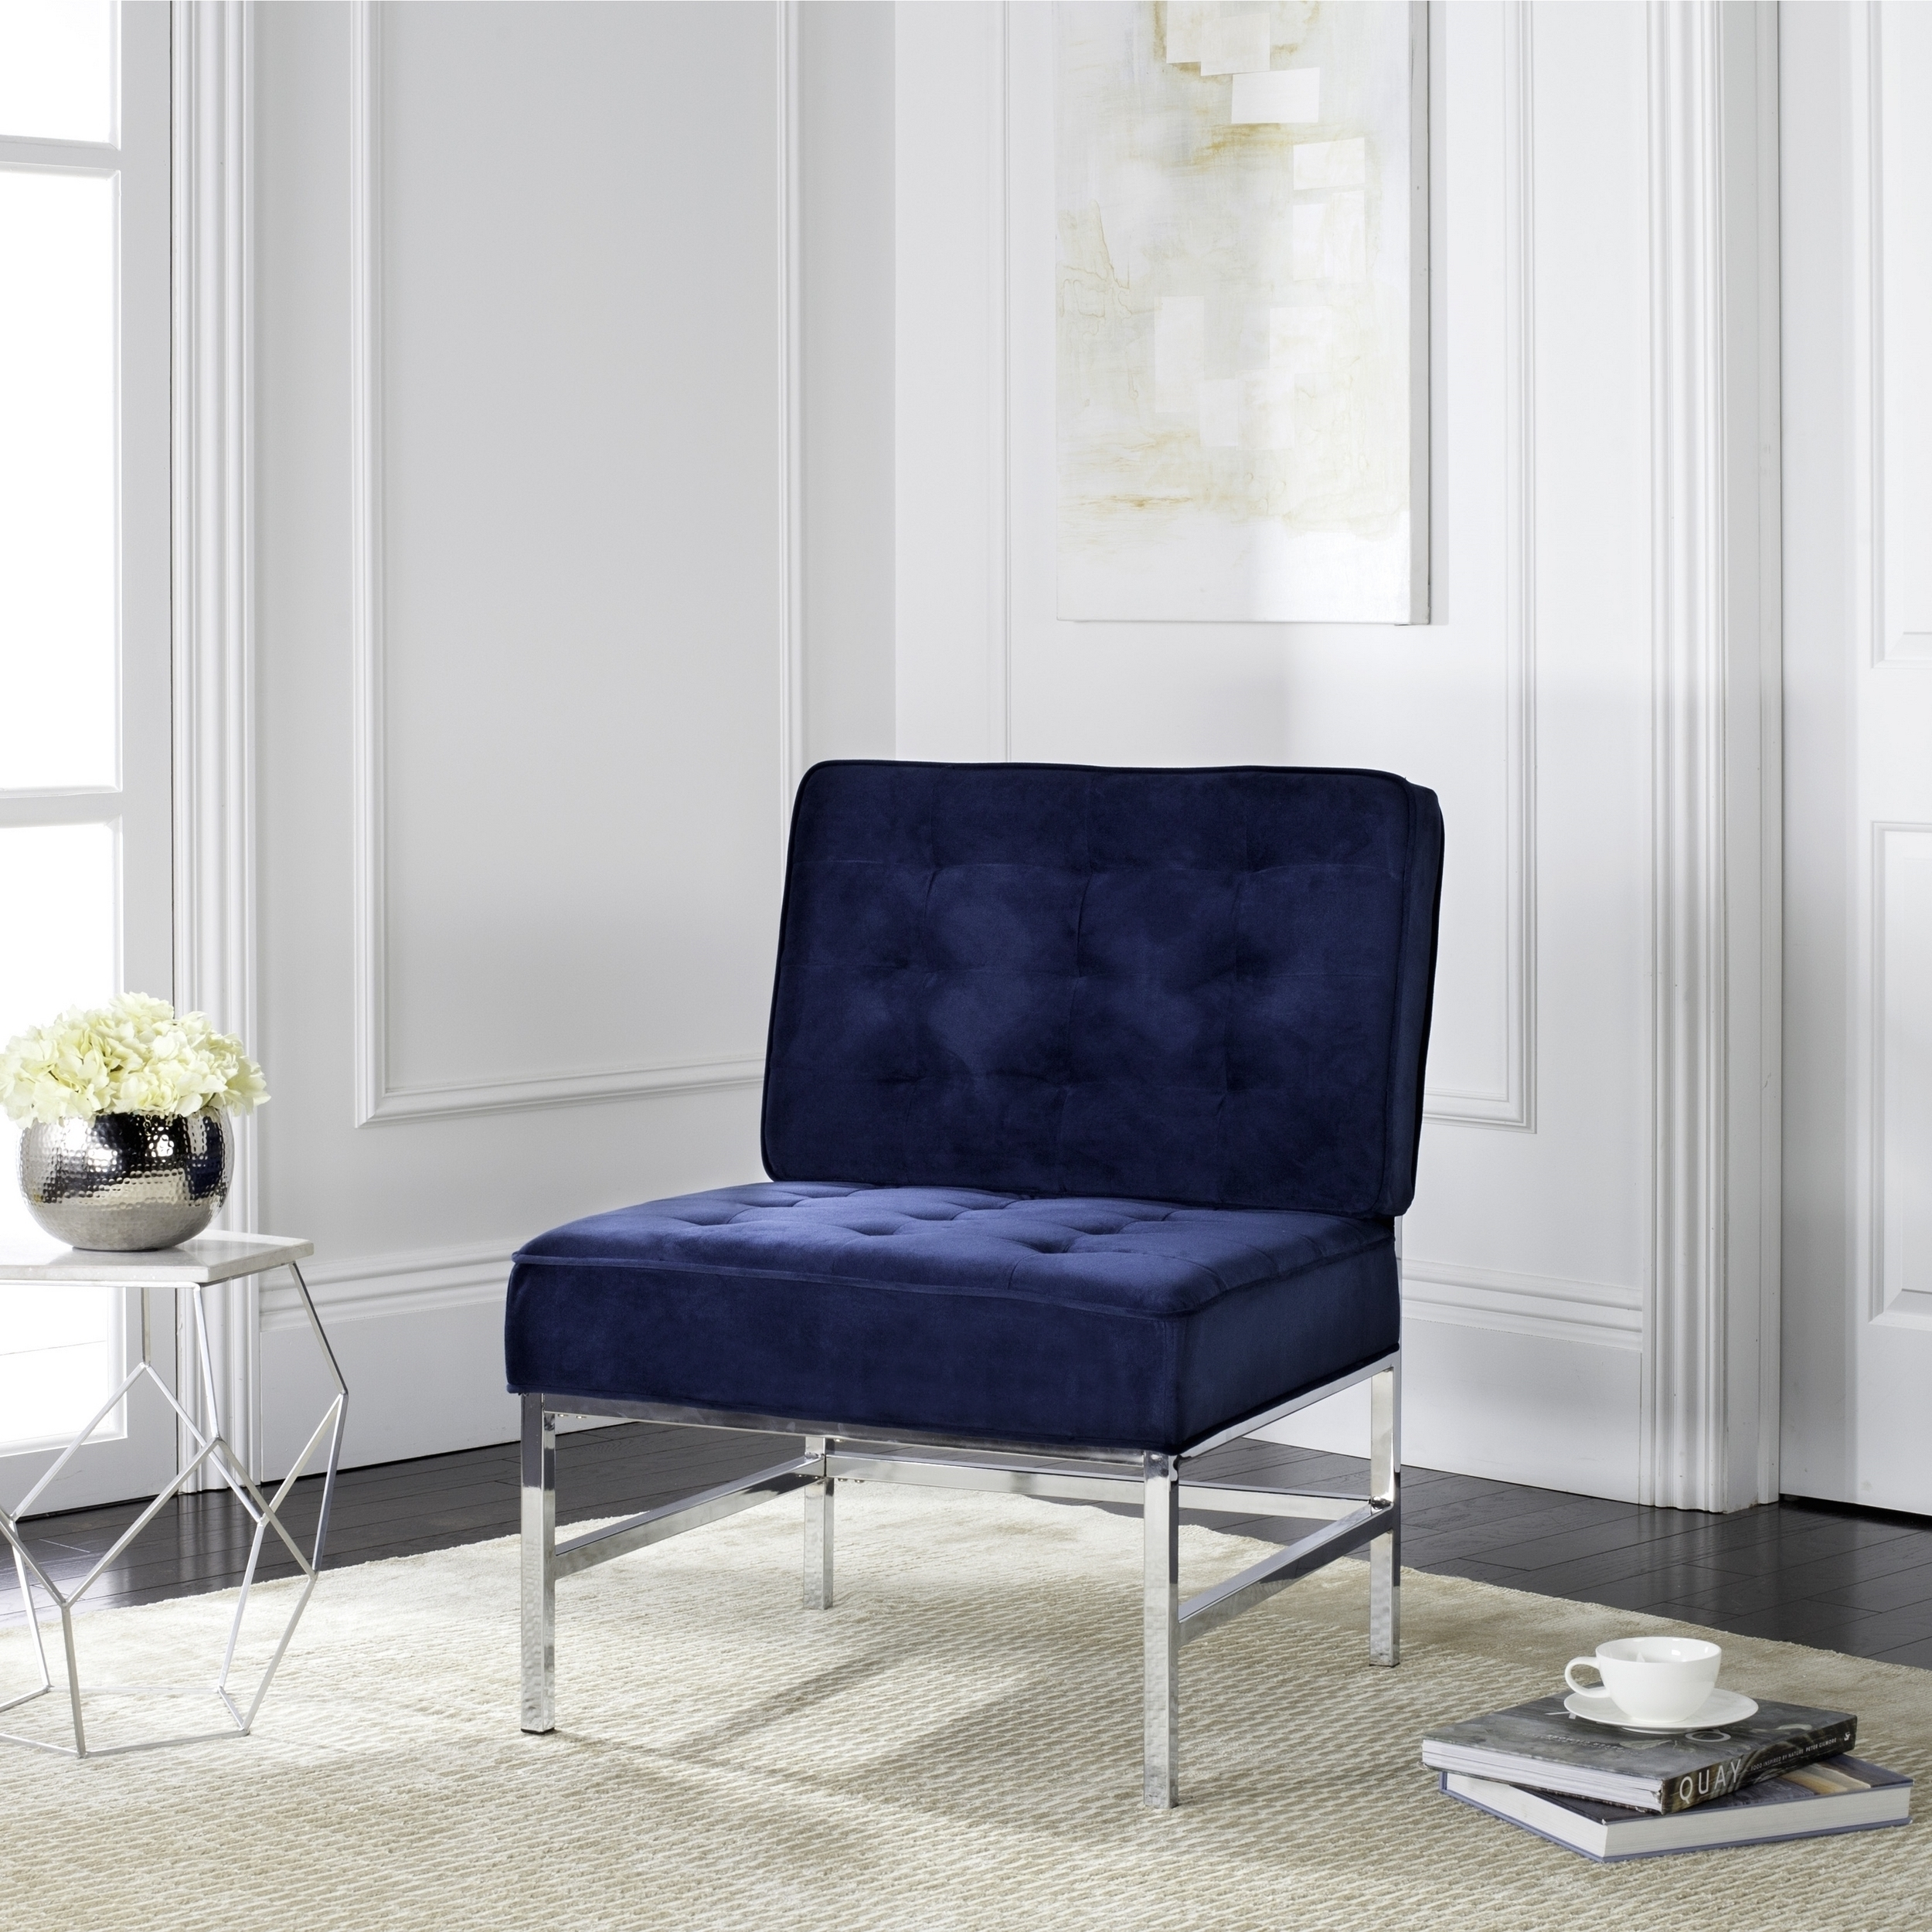 2019 Accent Sofa Chairs Intended For Ansel Blue Velvet Tufted Accent Chair Contemporary Armless Sofa (View 15 of 20)